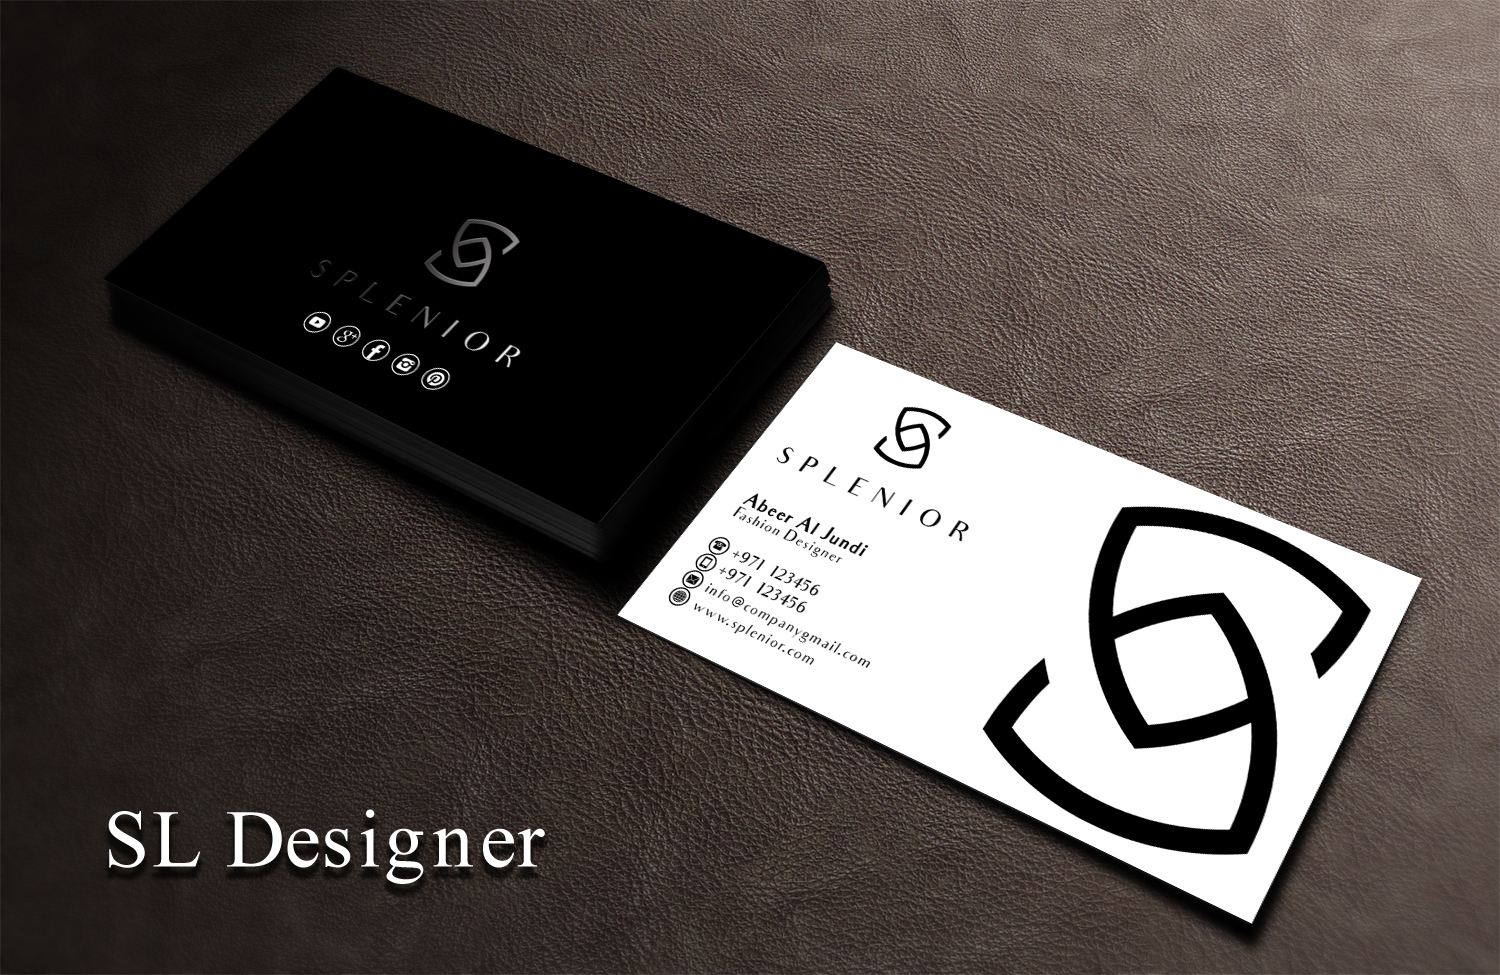 Modern Feminine Fashion Business Card Design For A Company By Sl Designer Design 17427147